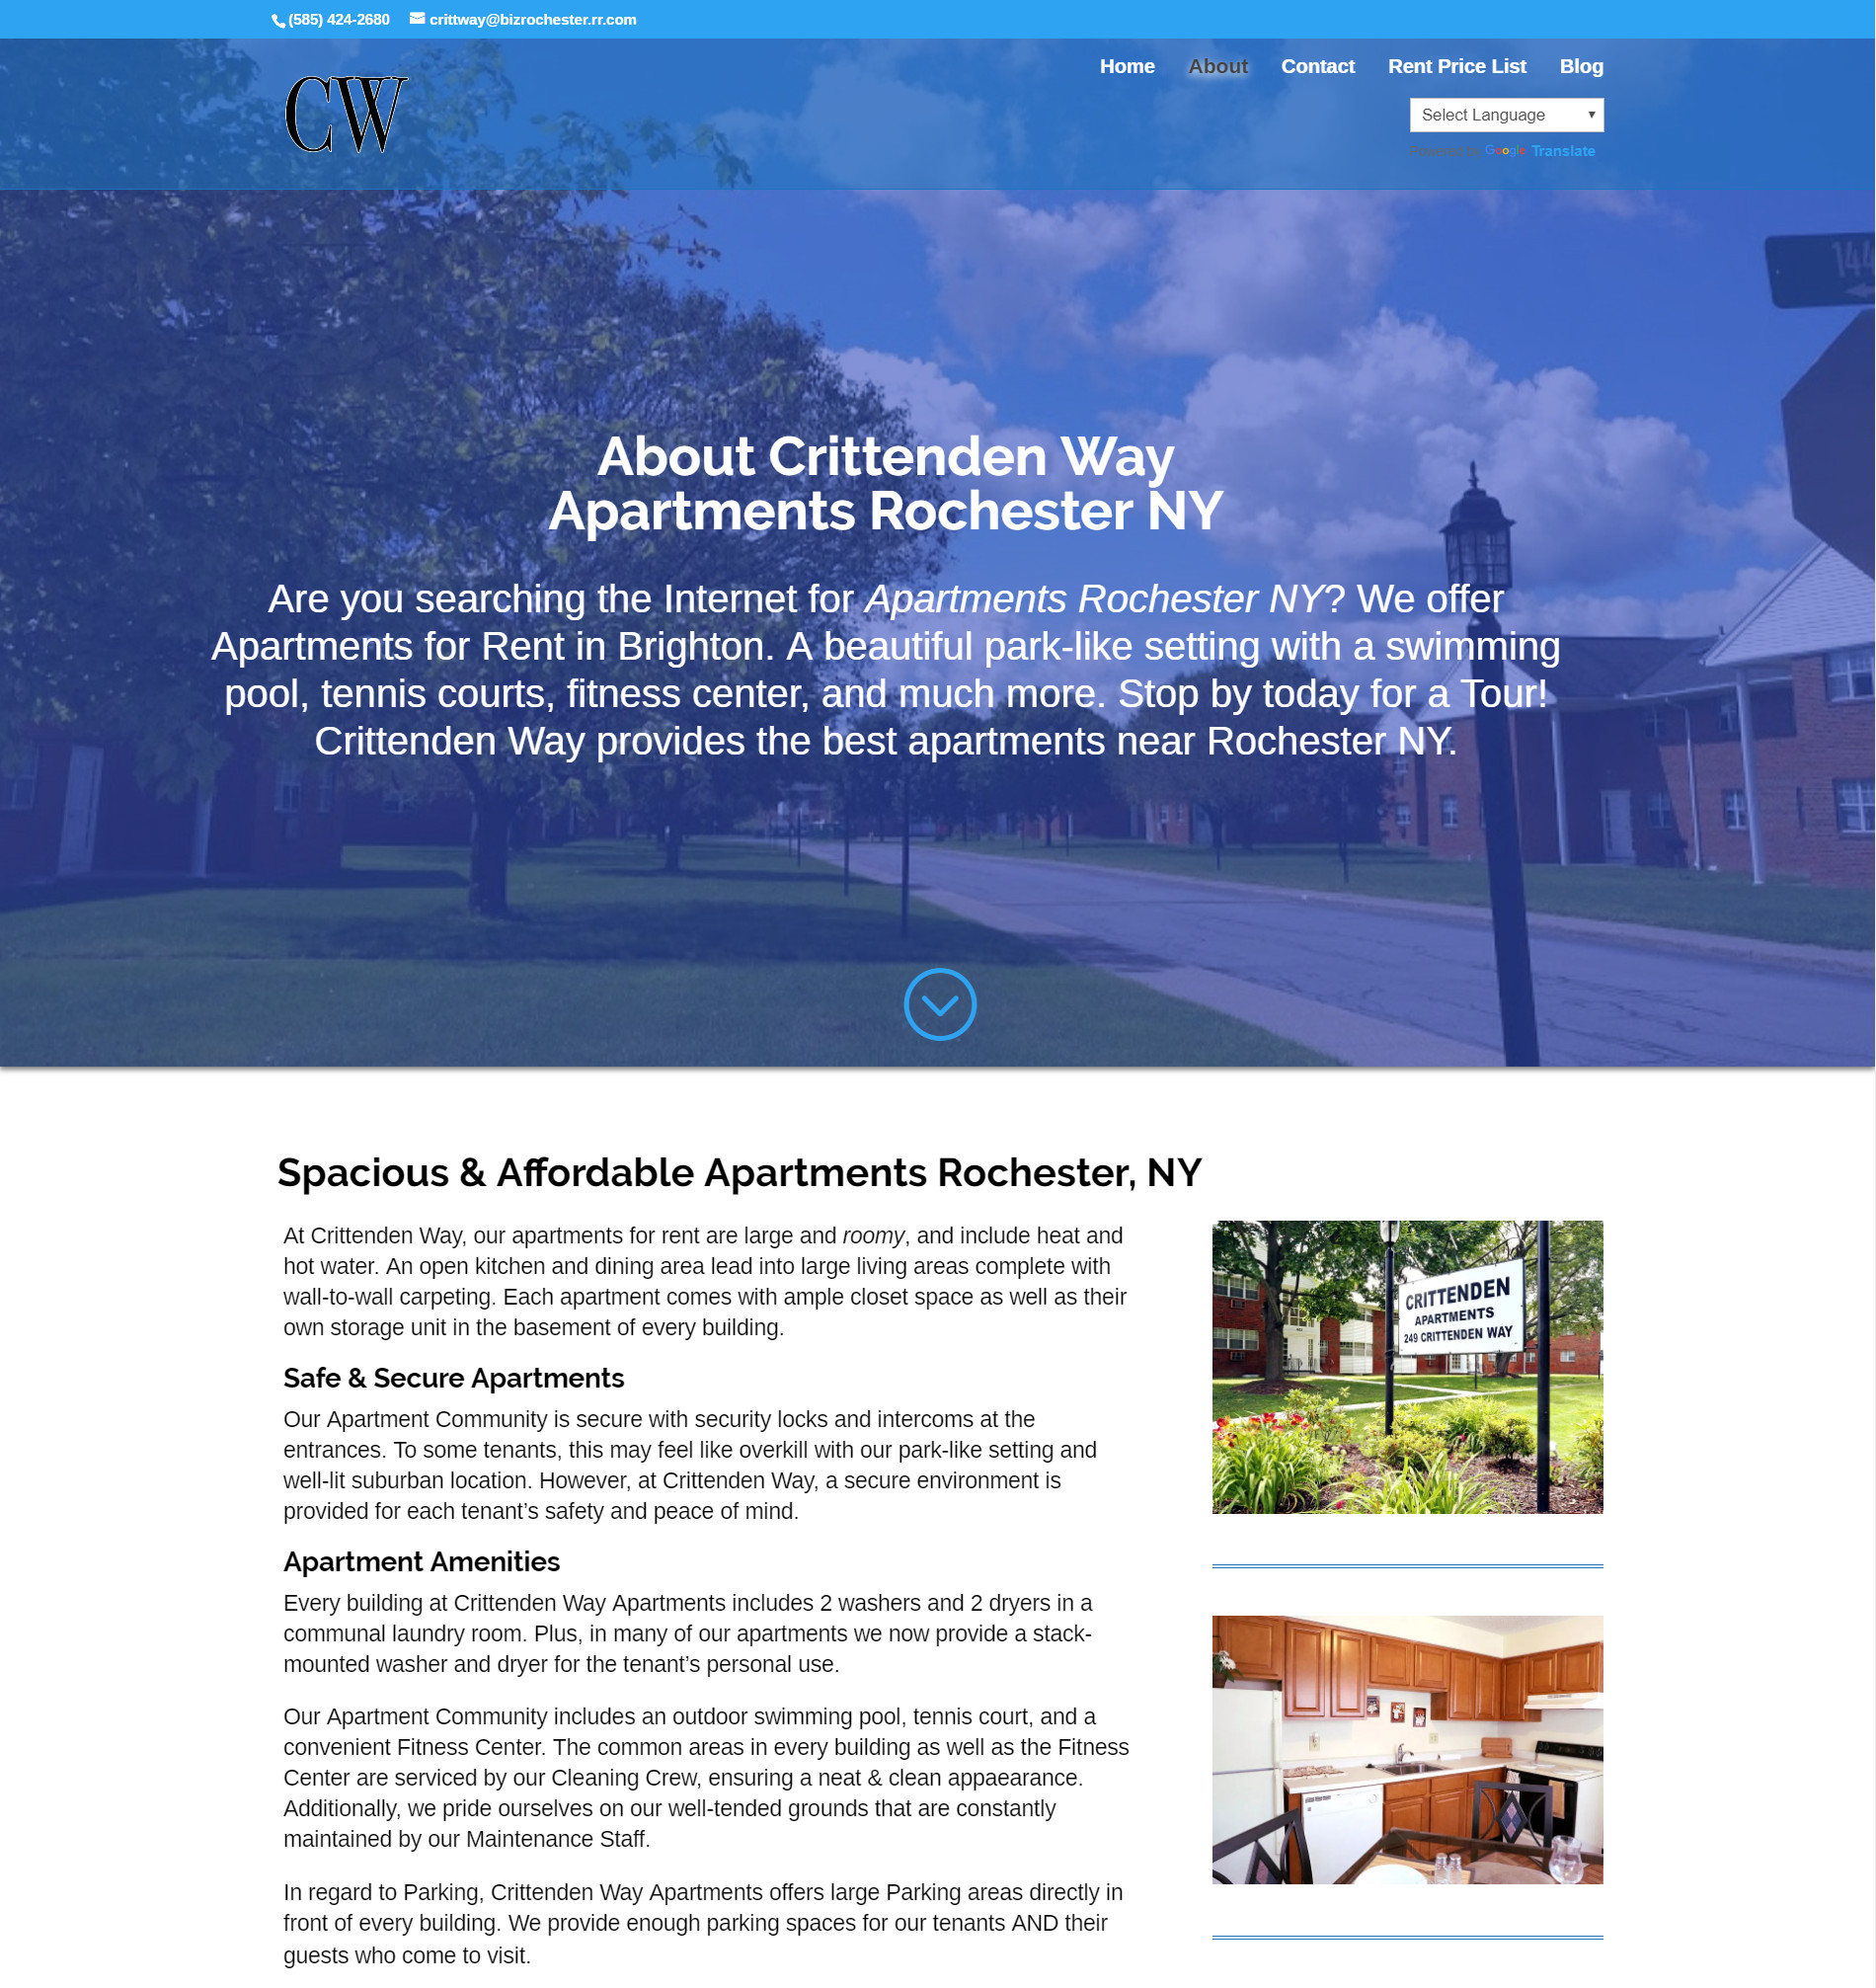 Click here to visit CrittendenWay.com to learn more about Crittenden Way Apartments Rochester, NY - Digital Marketing by Chase-It Marketing